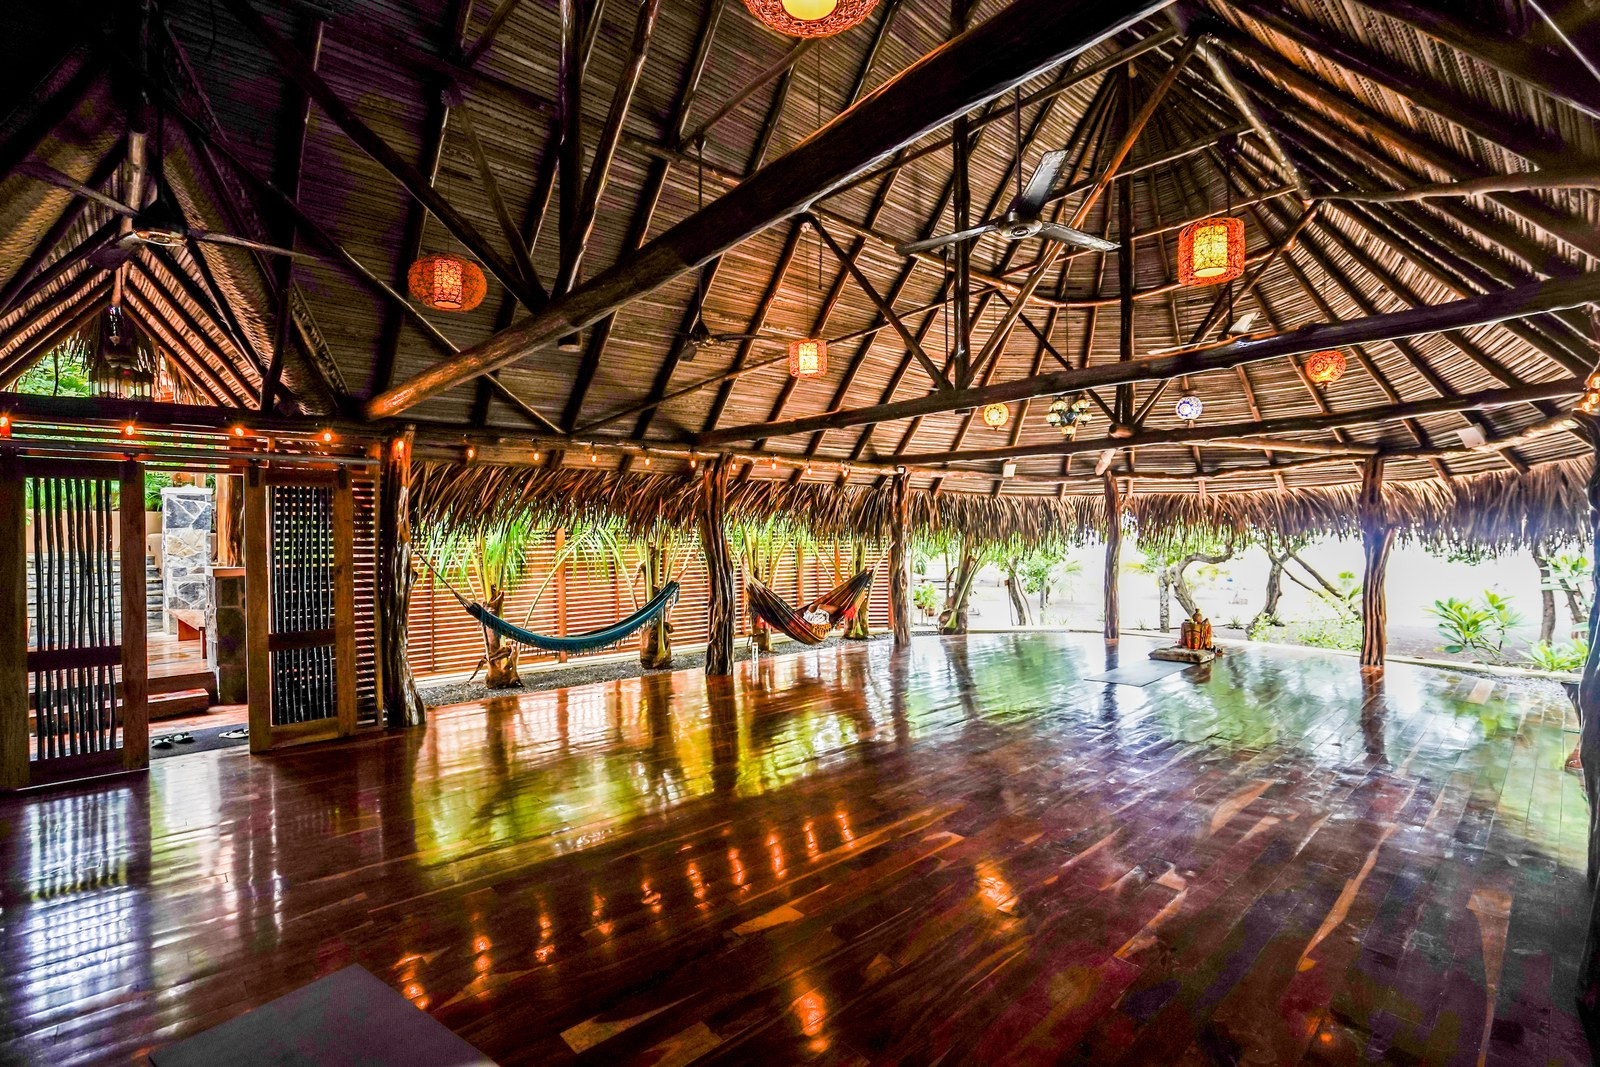 featured in Architectural Digest as one of the world's best open-air yoga shalas